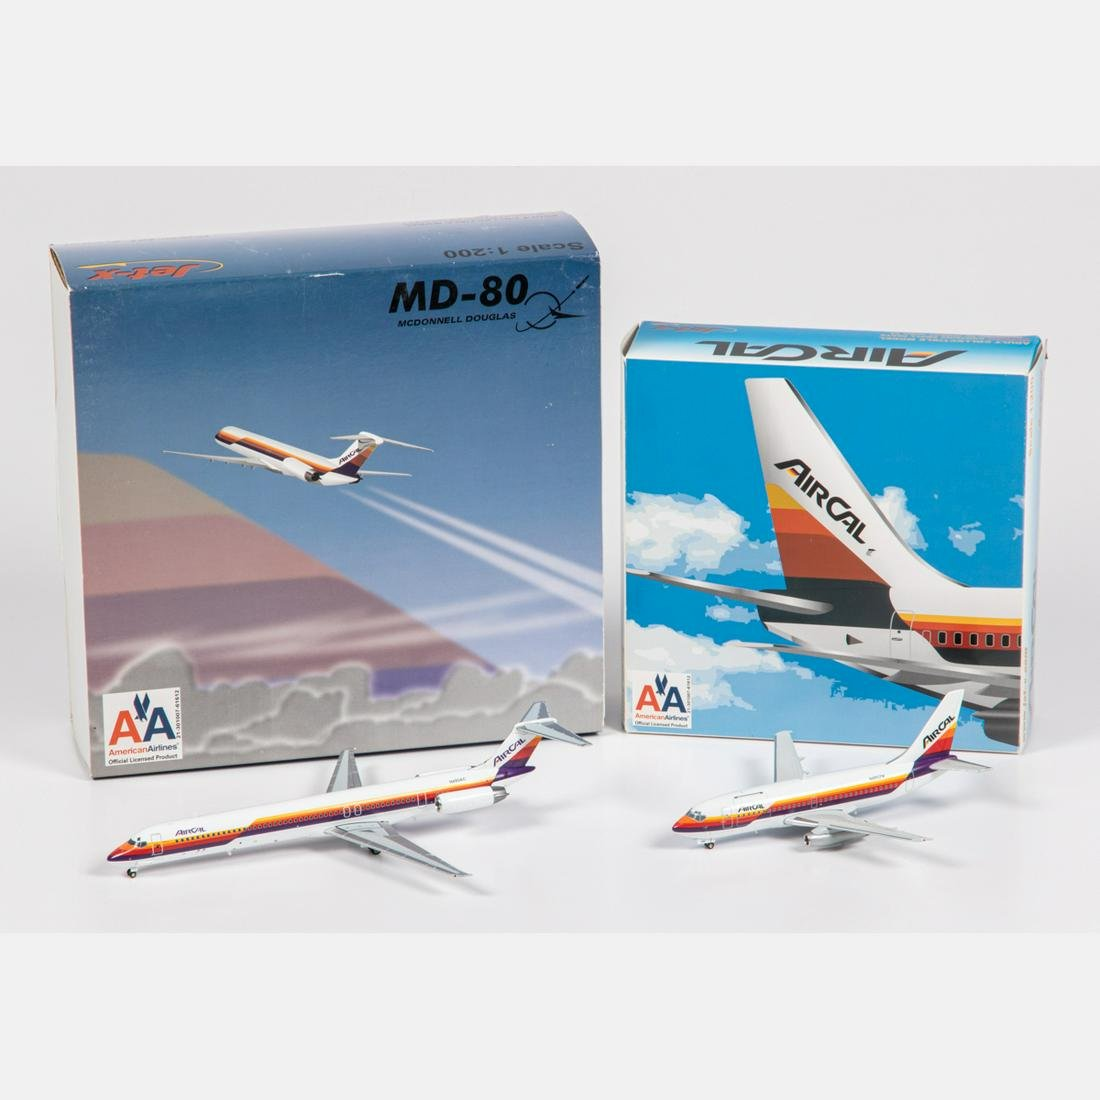 Two AirCal Diecast Airplanes